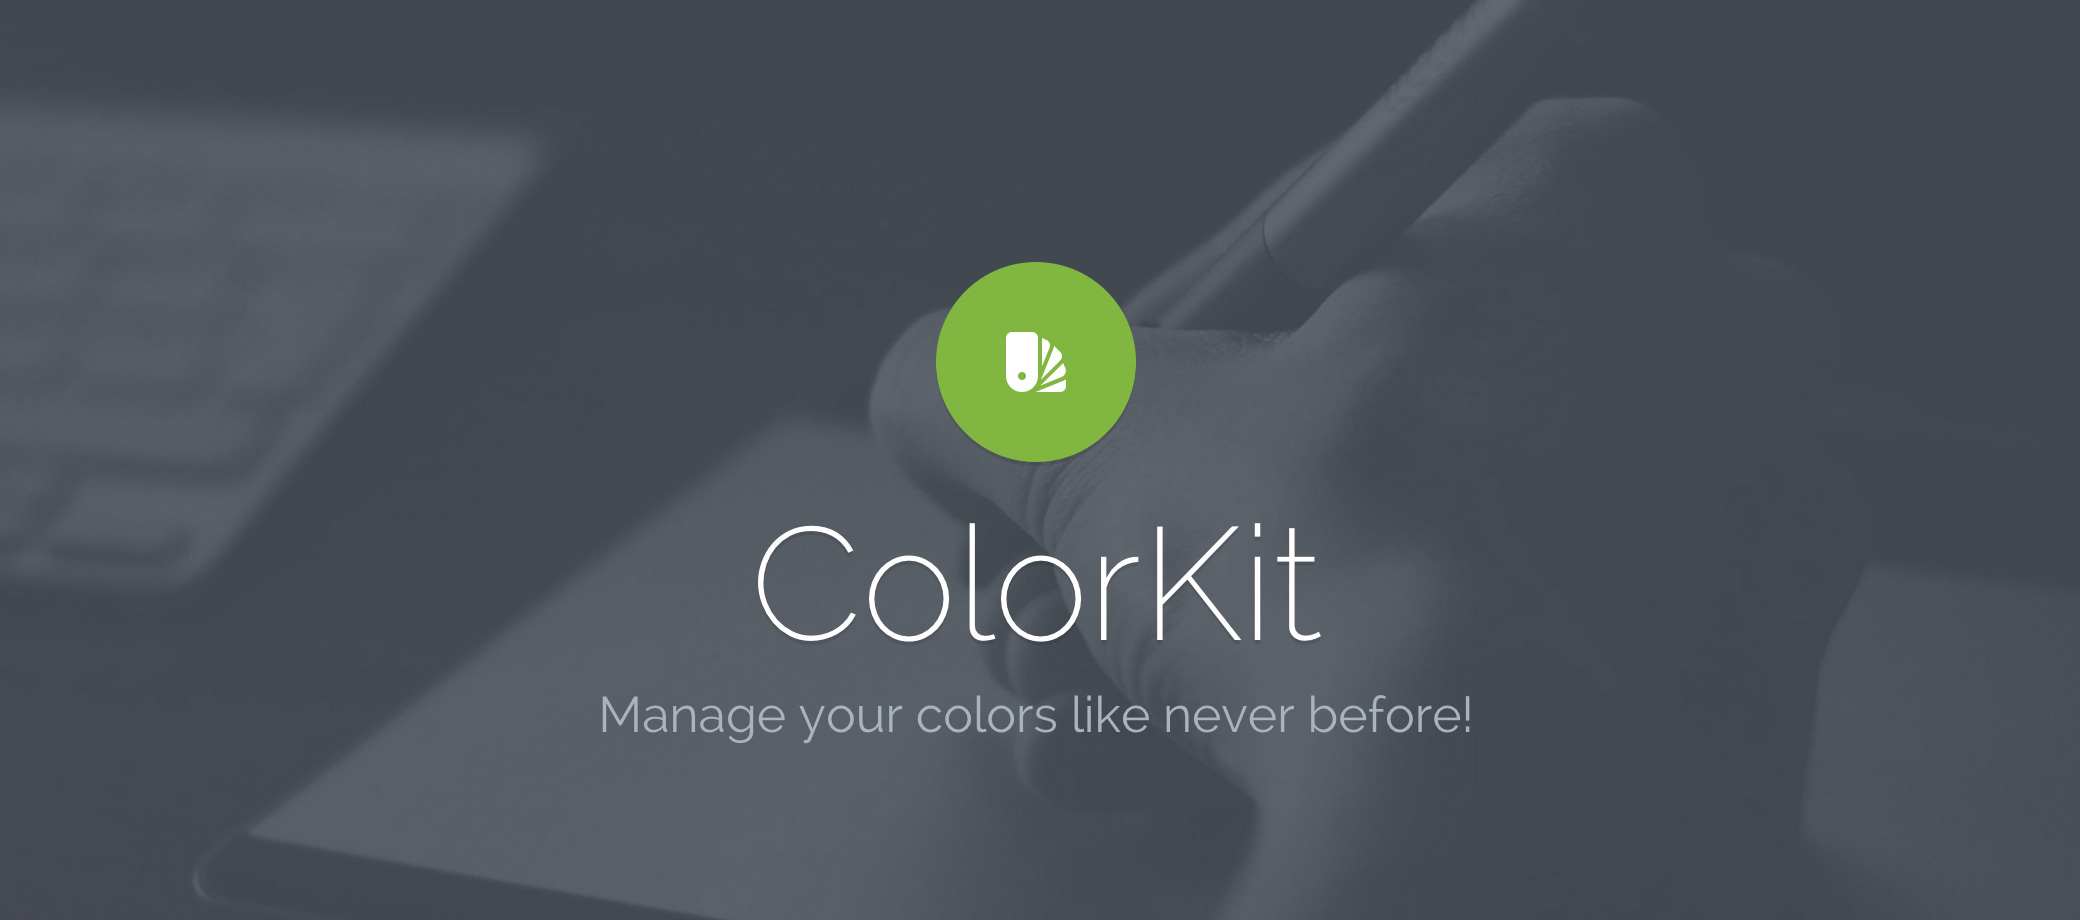 colorkit.